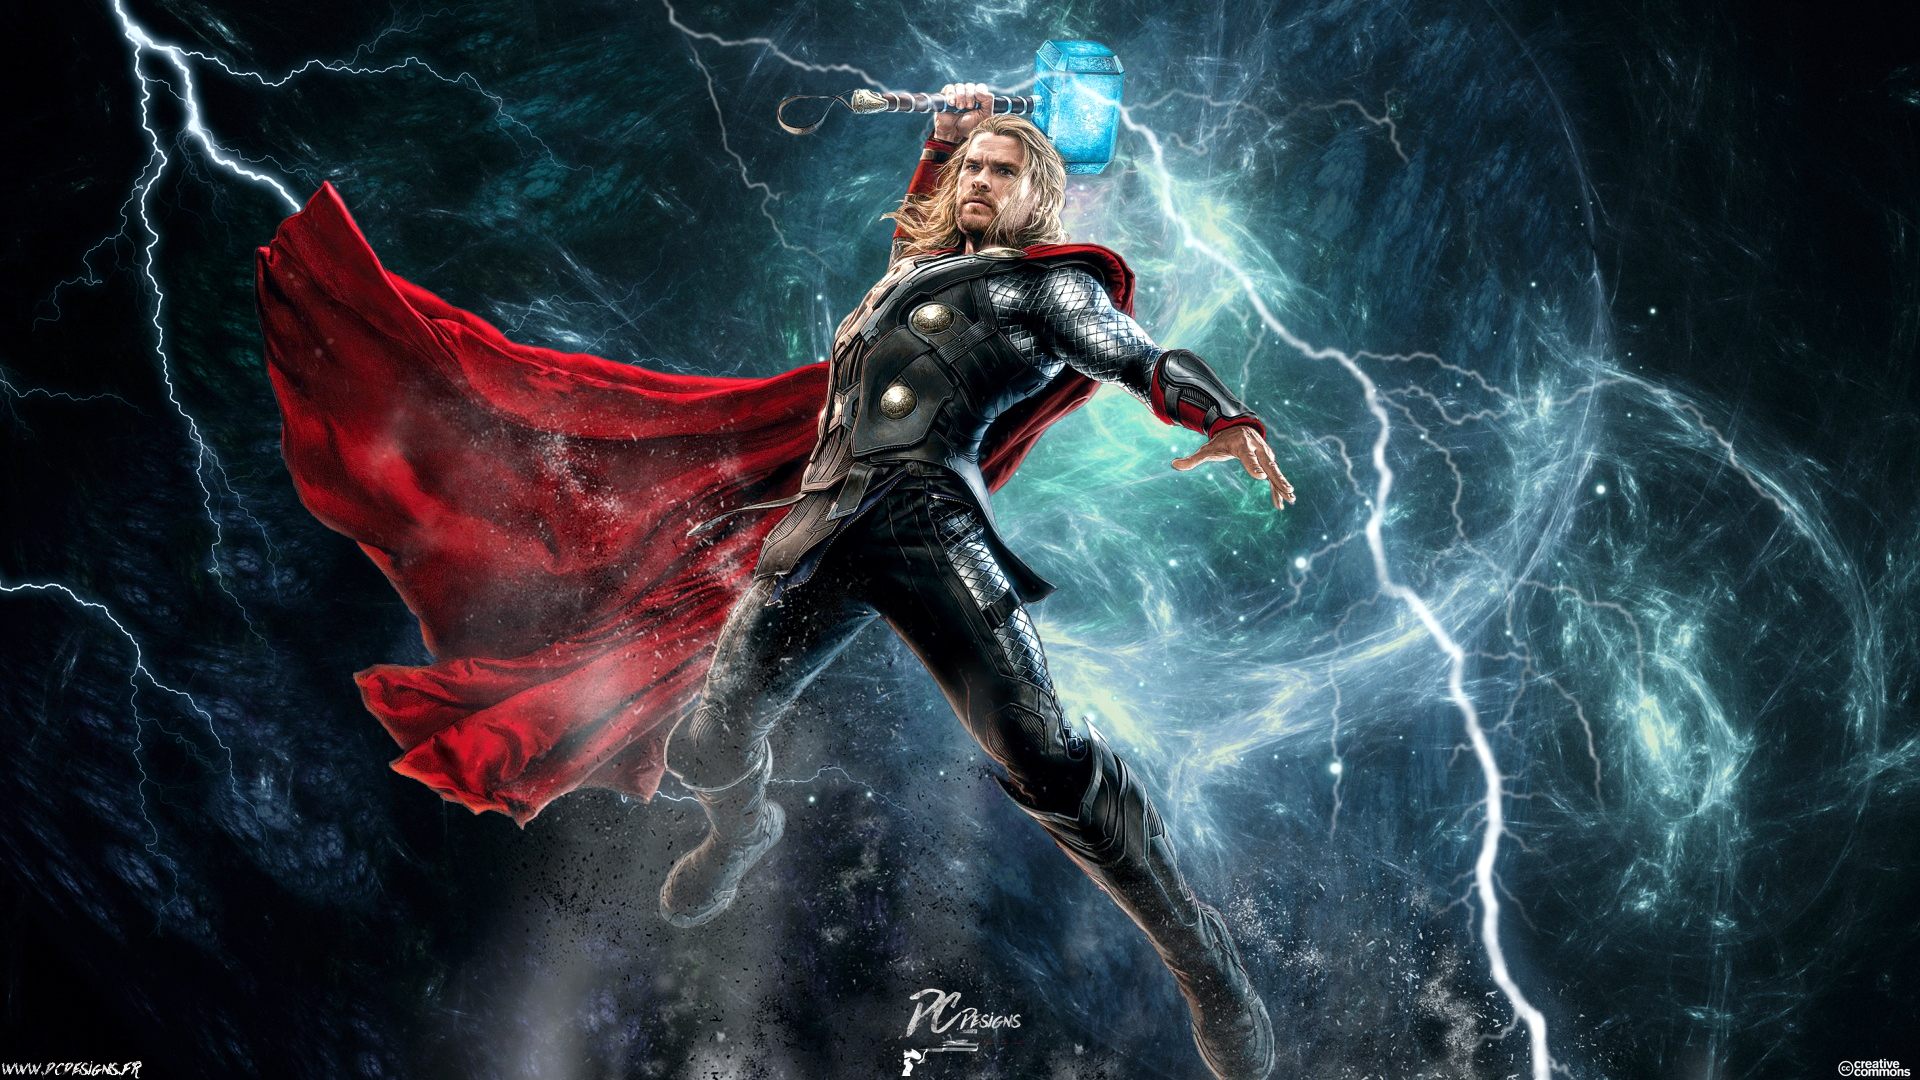 Movie - Avengers: Age of Ultron  Thor Chris Hemsworth Avengers Fan Art Digital Art Wallpaper